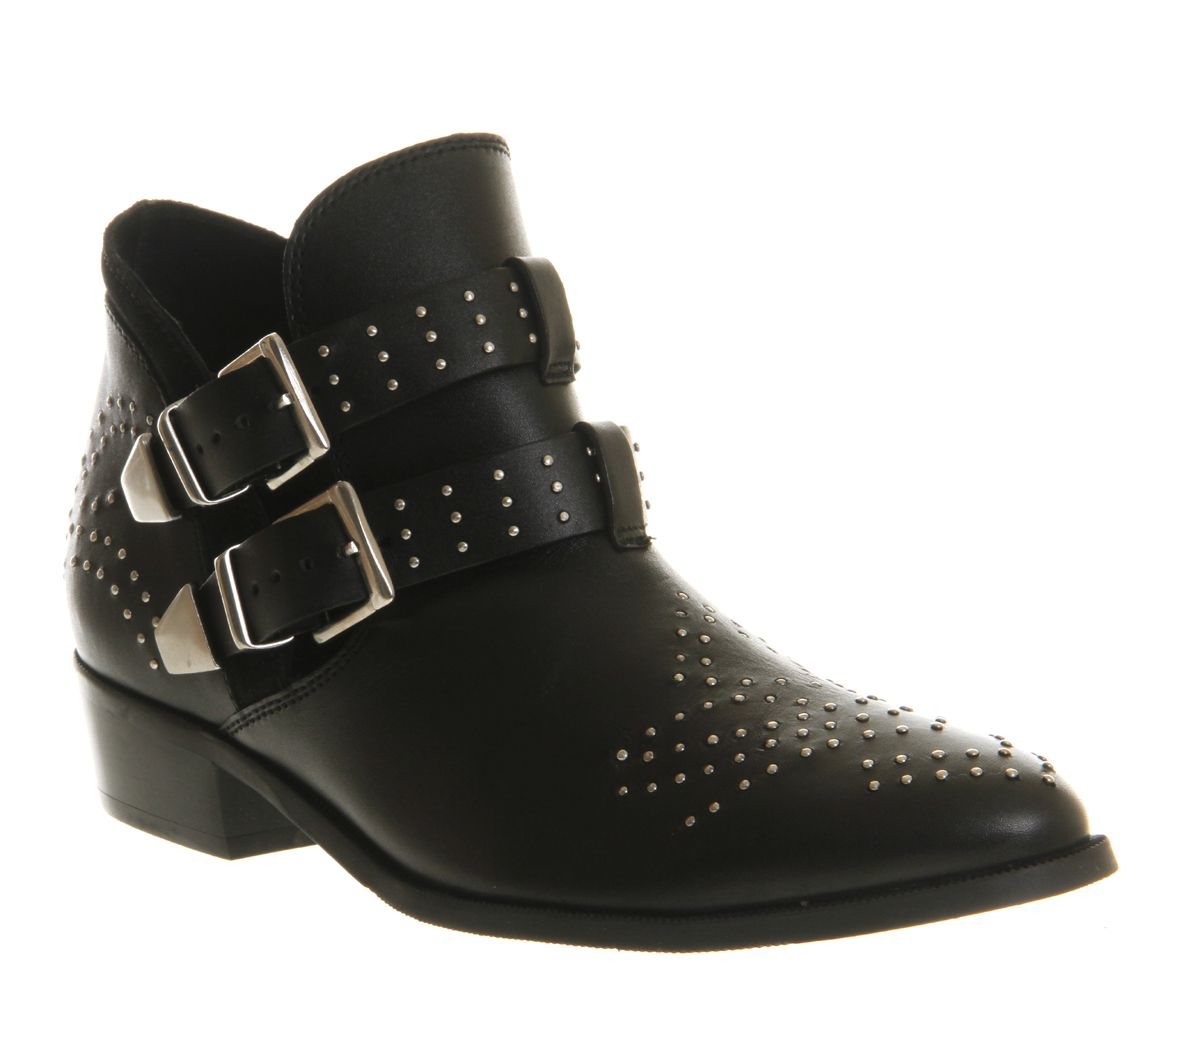 Office Mohawk Cut Out Black Leather Ankle Boots